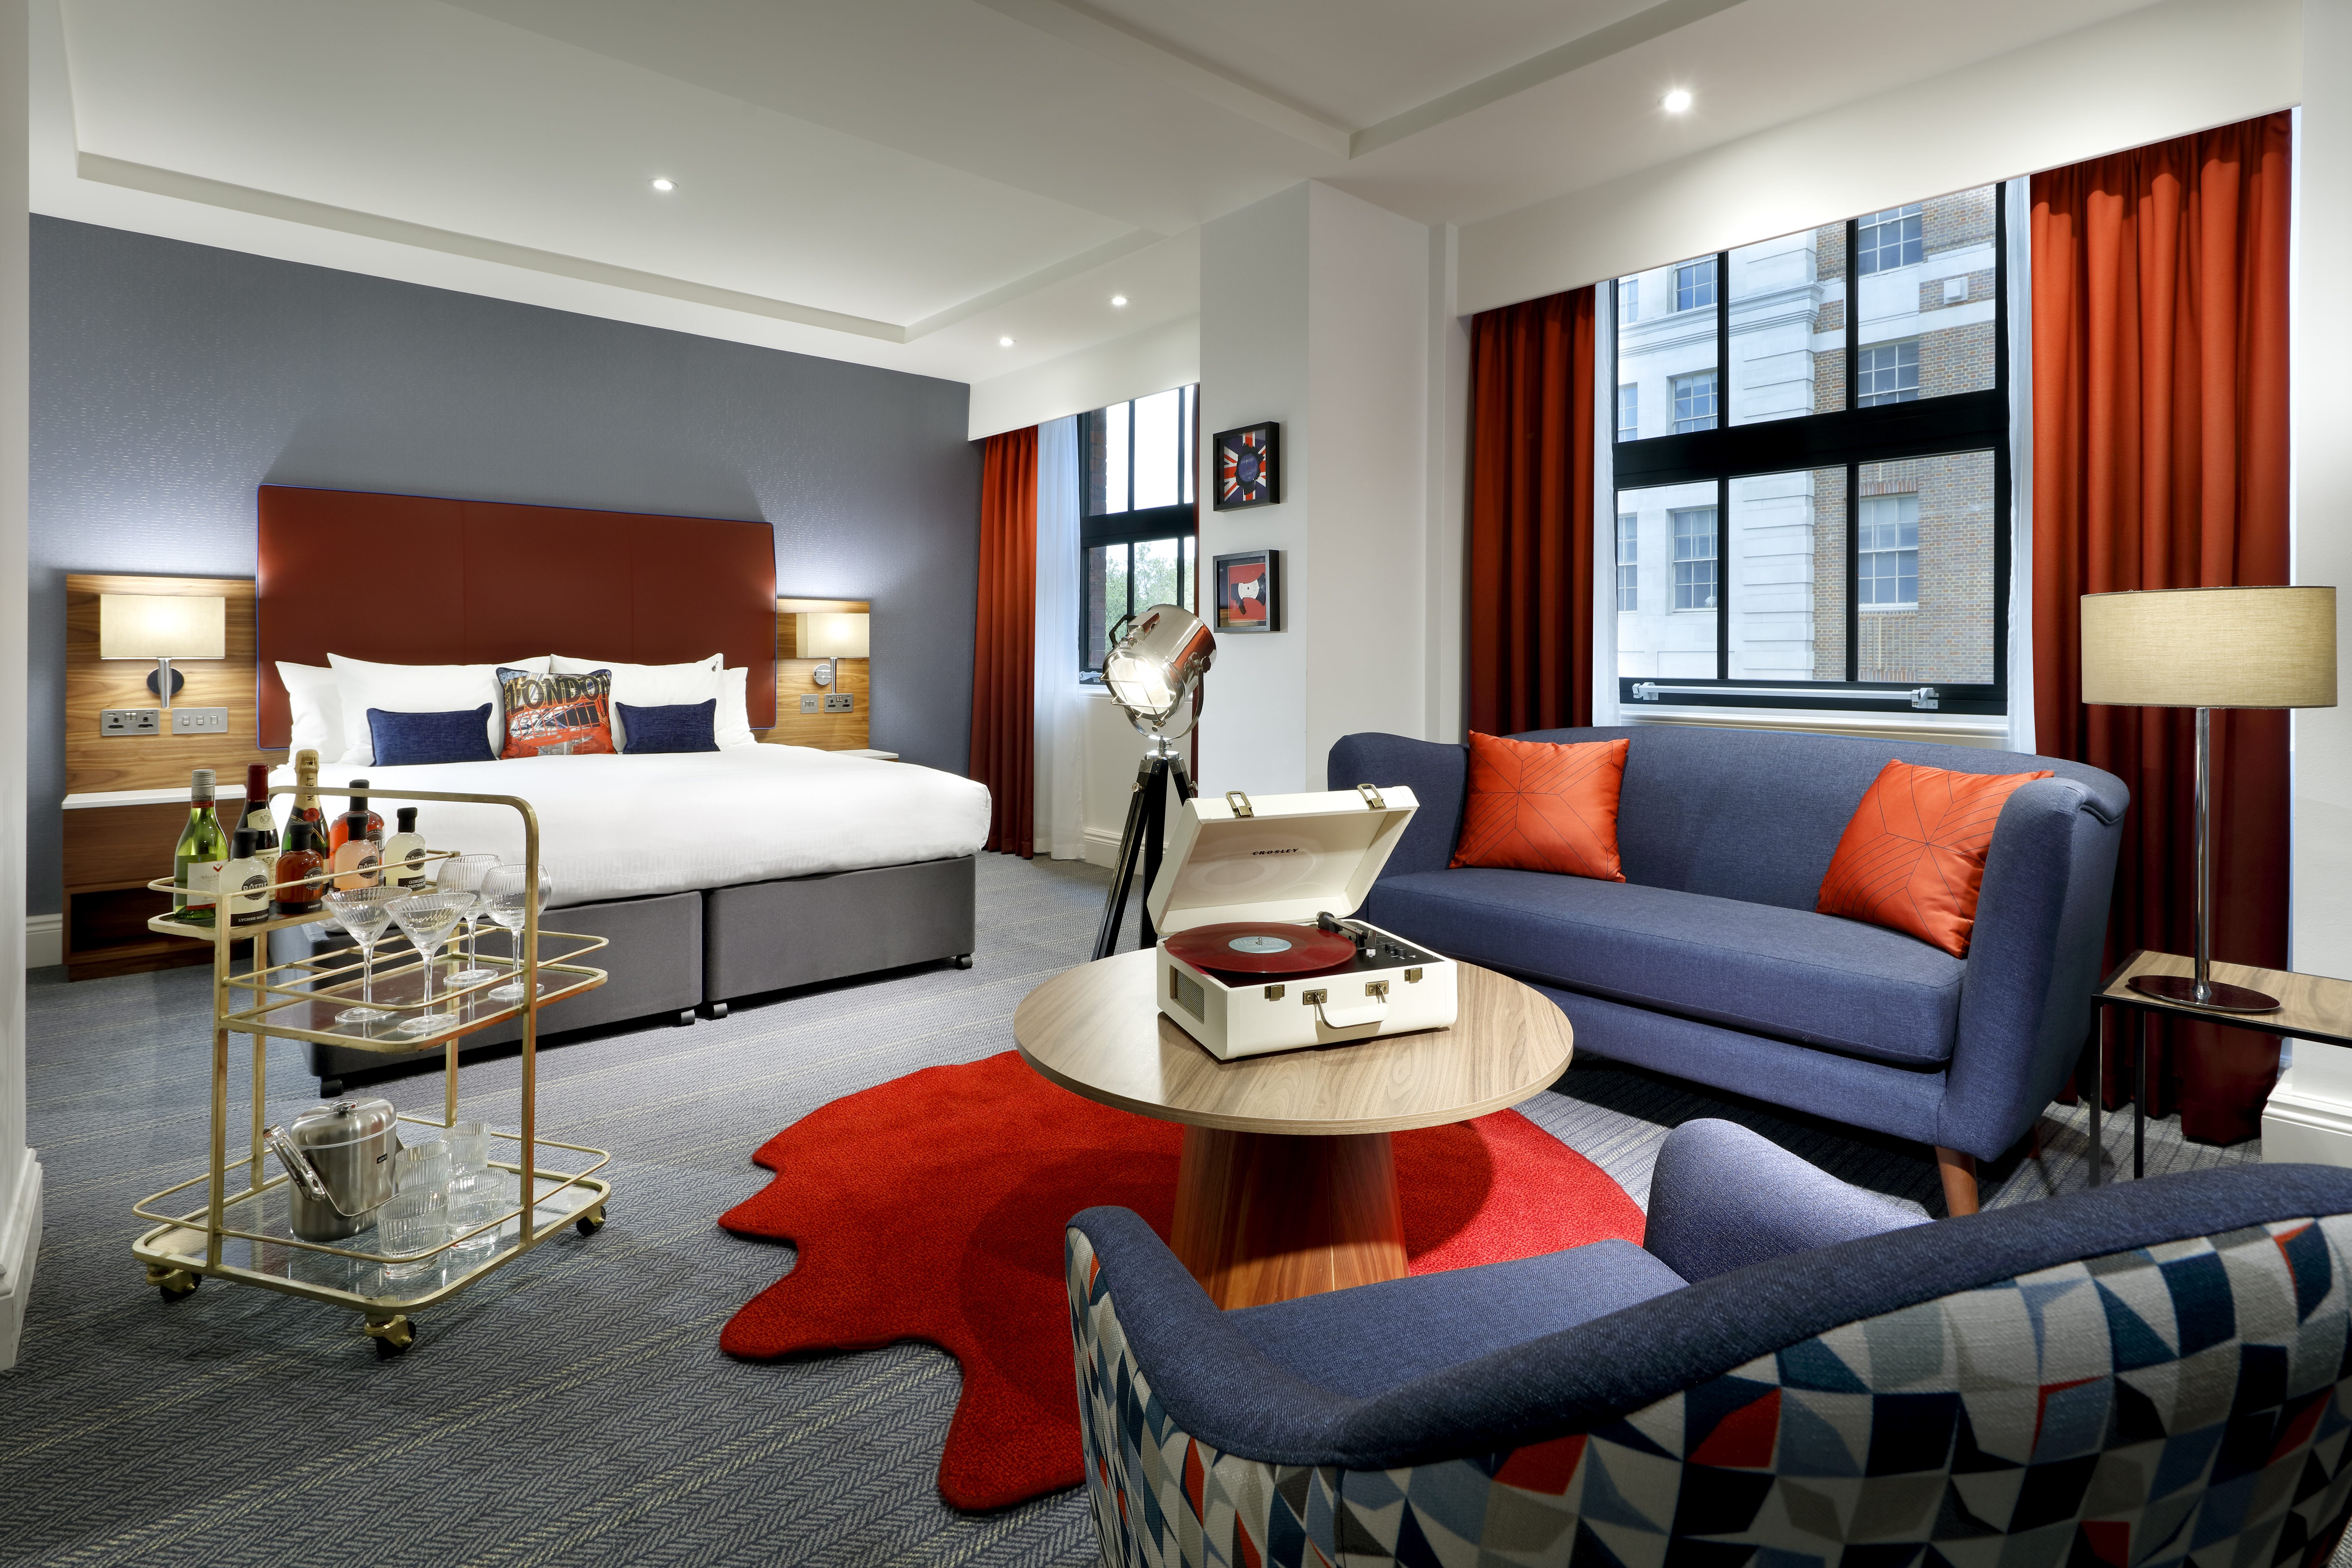 Hard Rock hotel bedroom with Curtis furniture